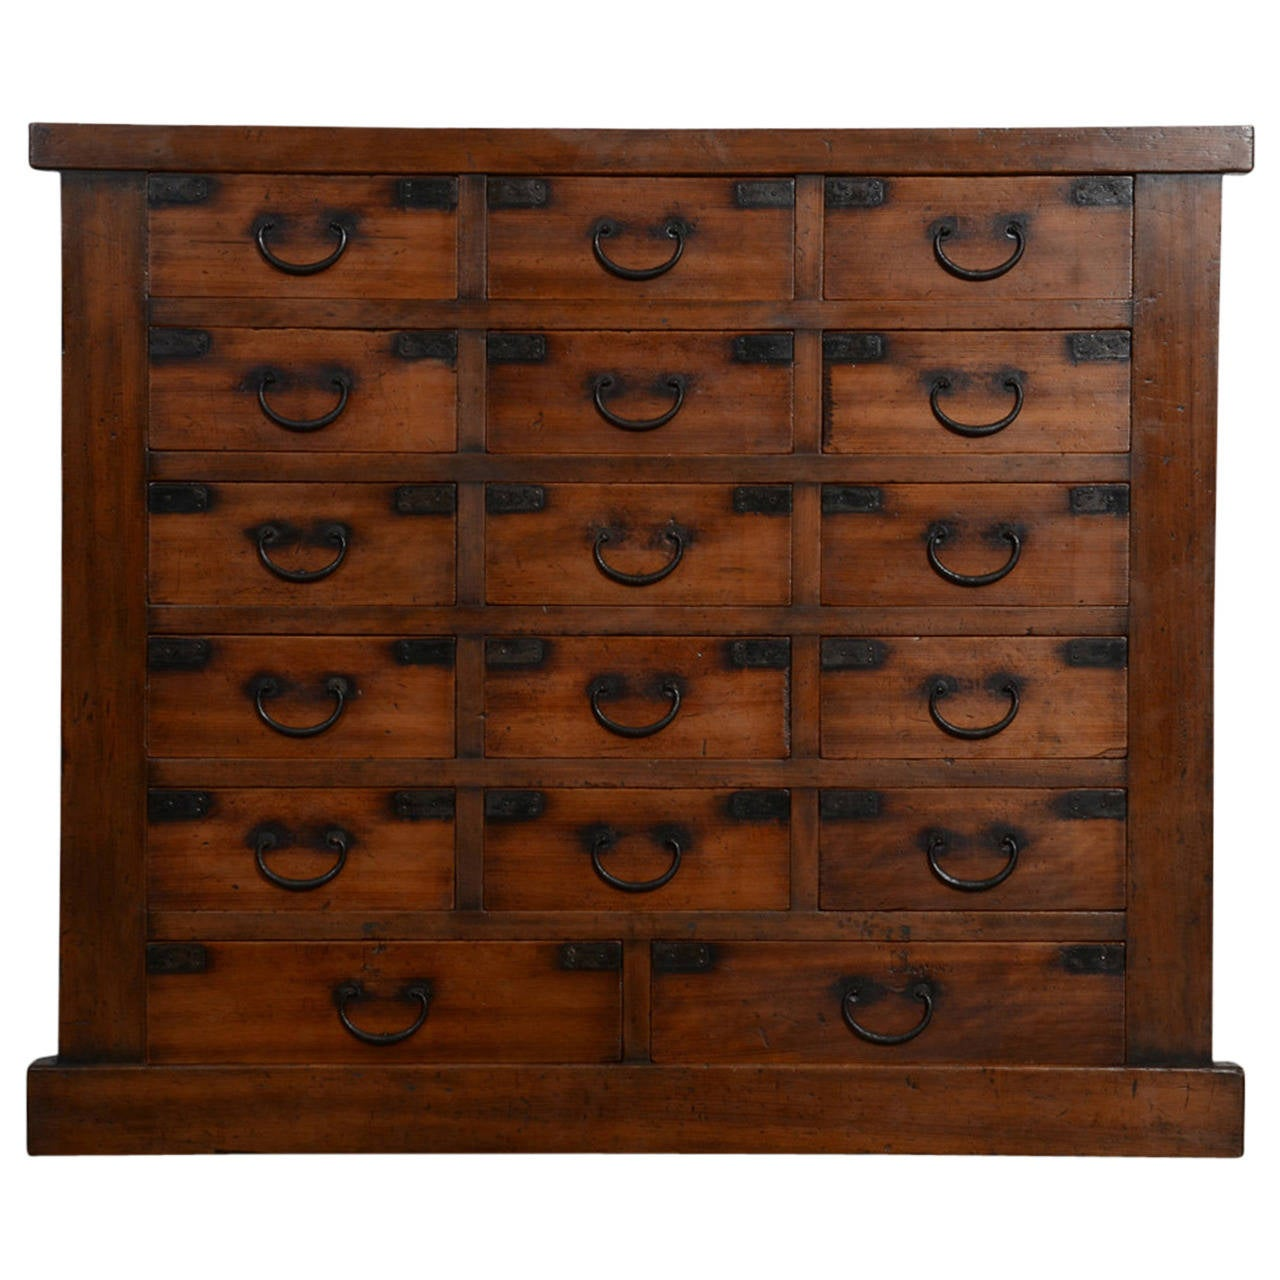 Antique Japanese Chest Of Drawers, Meiji Period, 19th Century 1